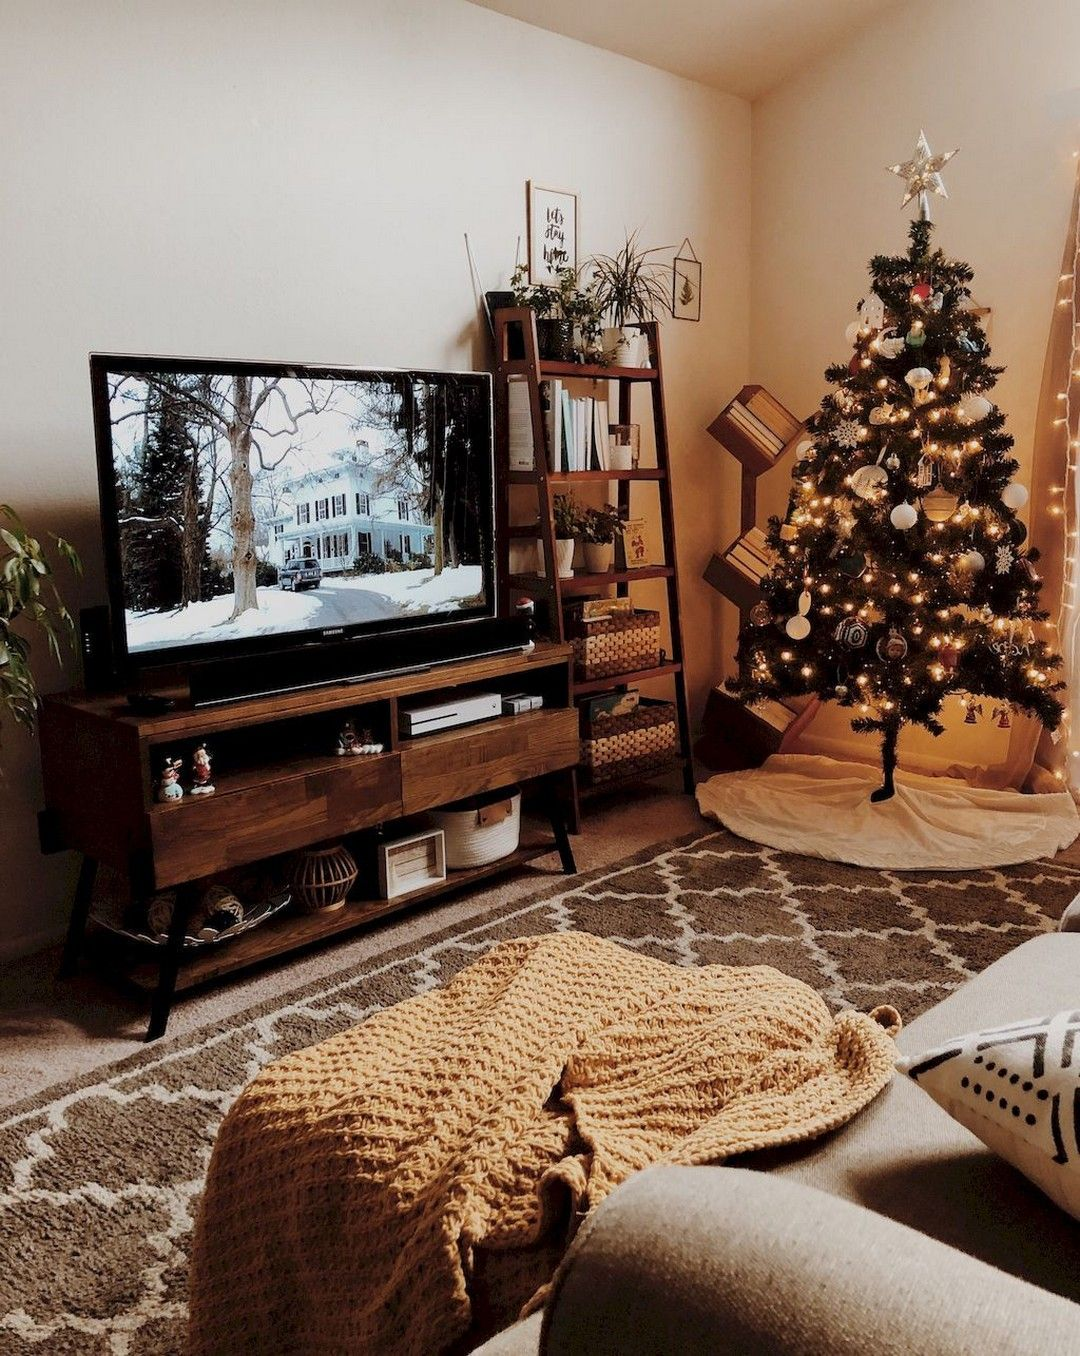 A Living Room Is Often The First Room We Decorate And The First